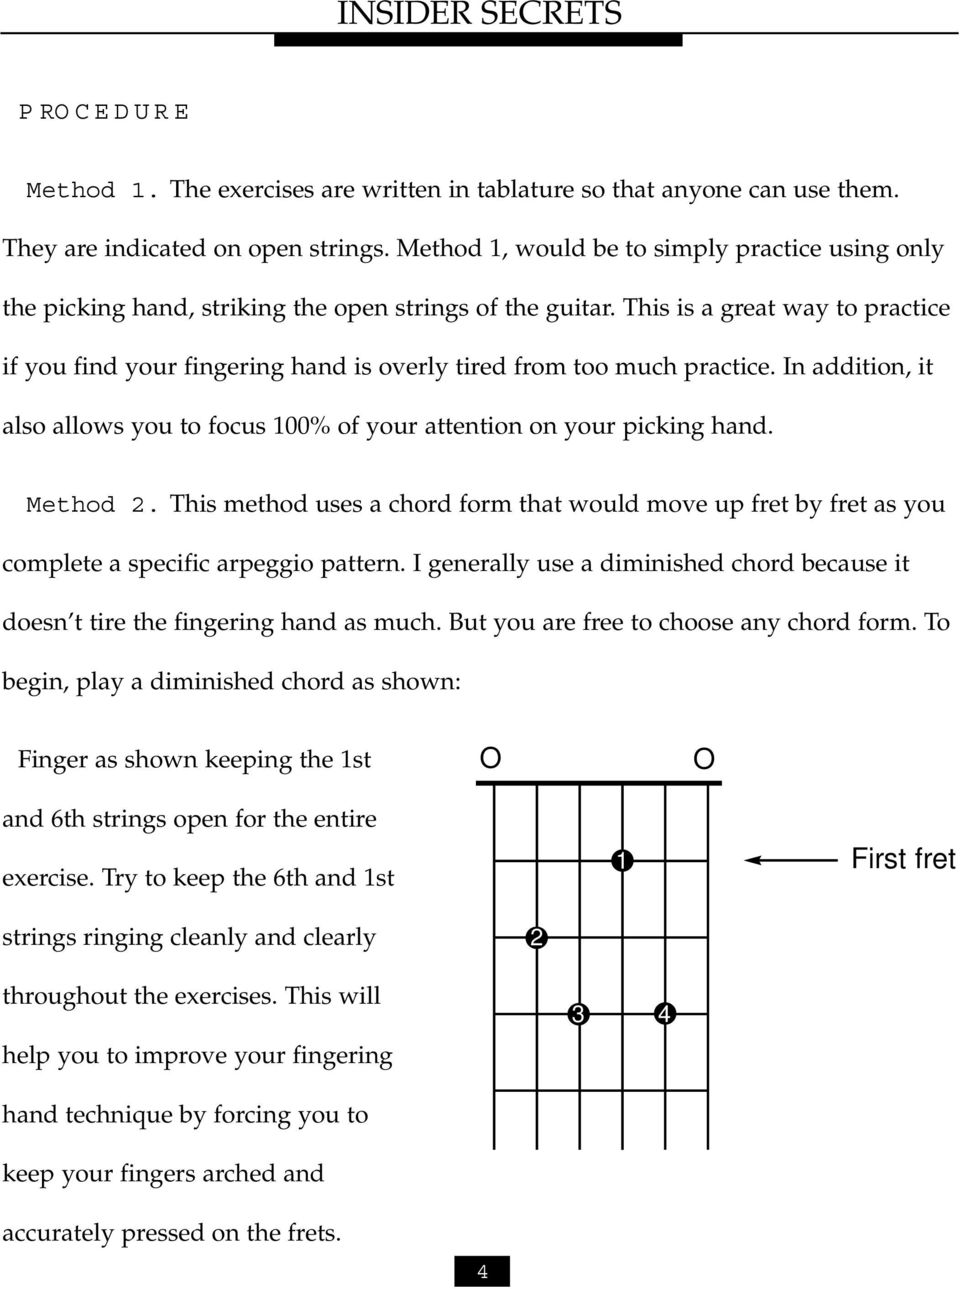 This is a great way to practice if you find your fingering hand is overly tired from too much practice. In addition, it also allows you to focus 100% of your attention on your picking hand. Method 2.